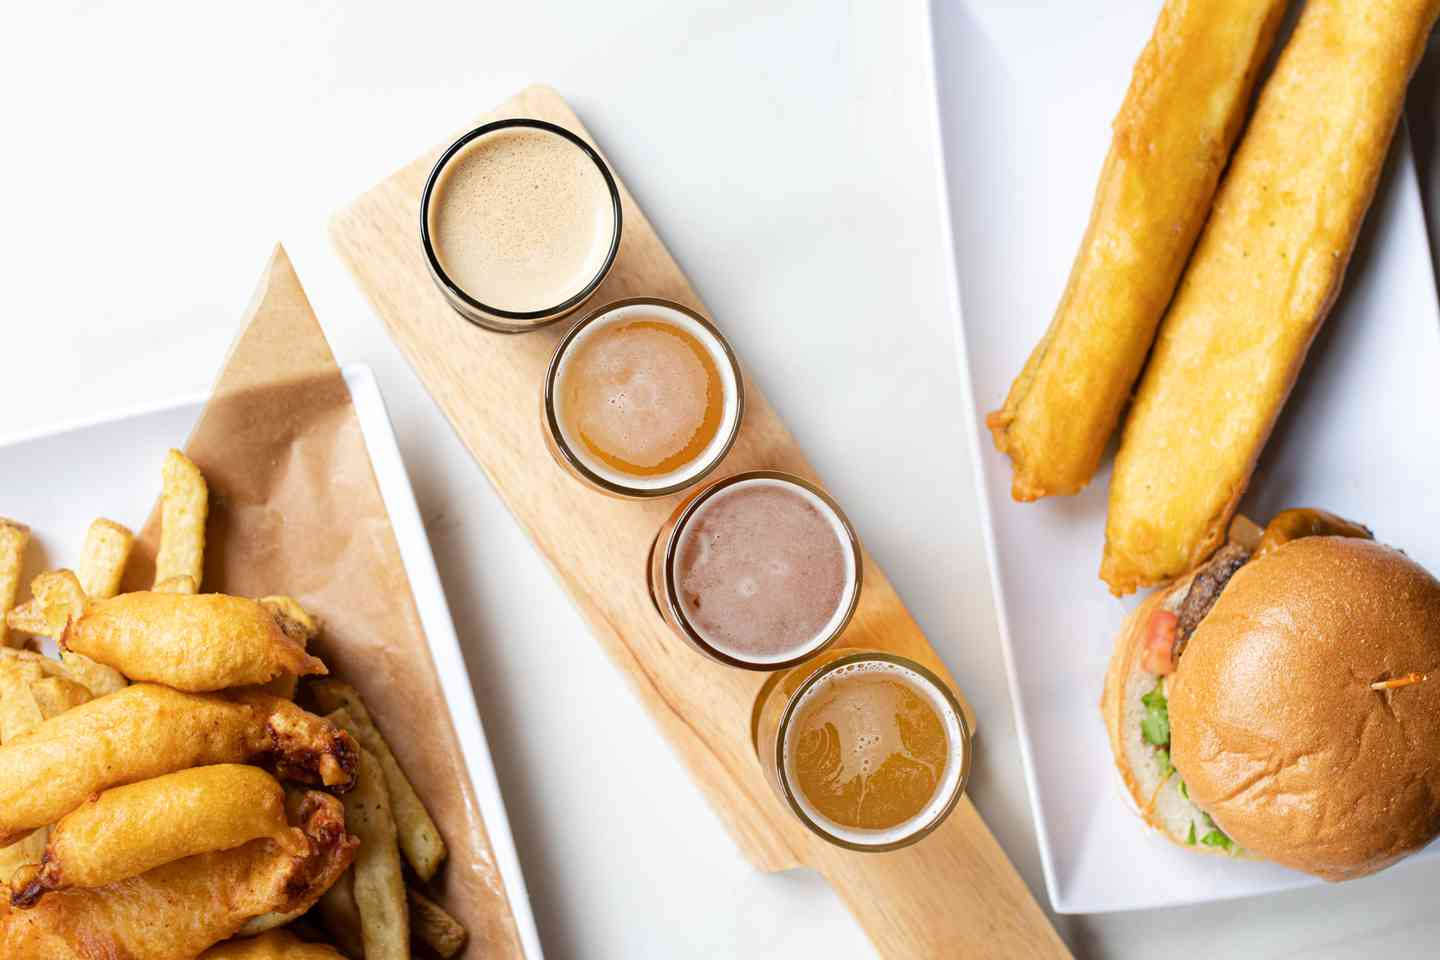 Fish n chips, beer flight, and burger with zucchini